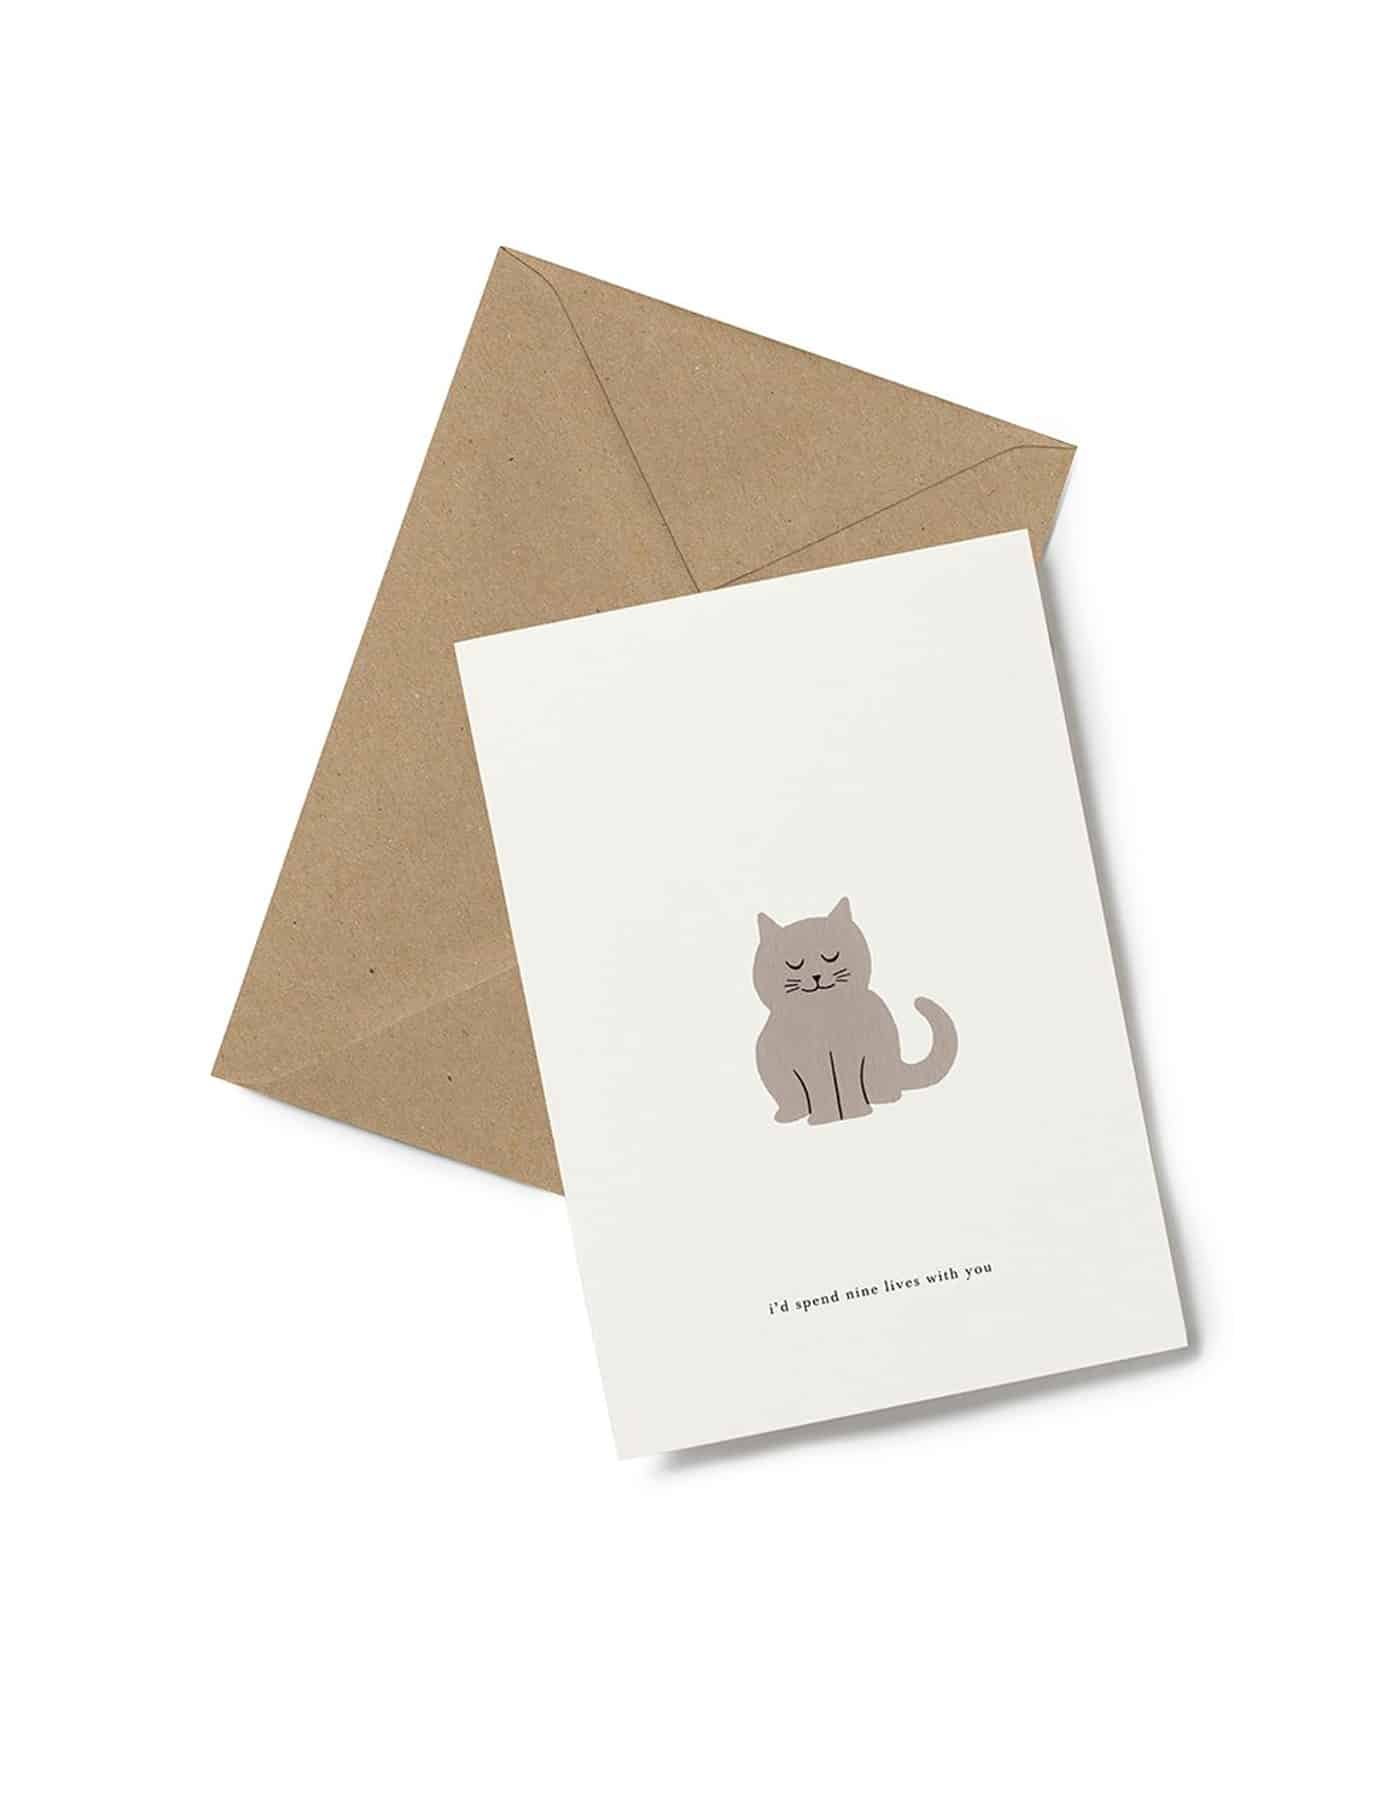 Kartotek 'i'd spend nine lives with you' Greeting Card